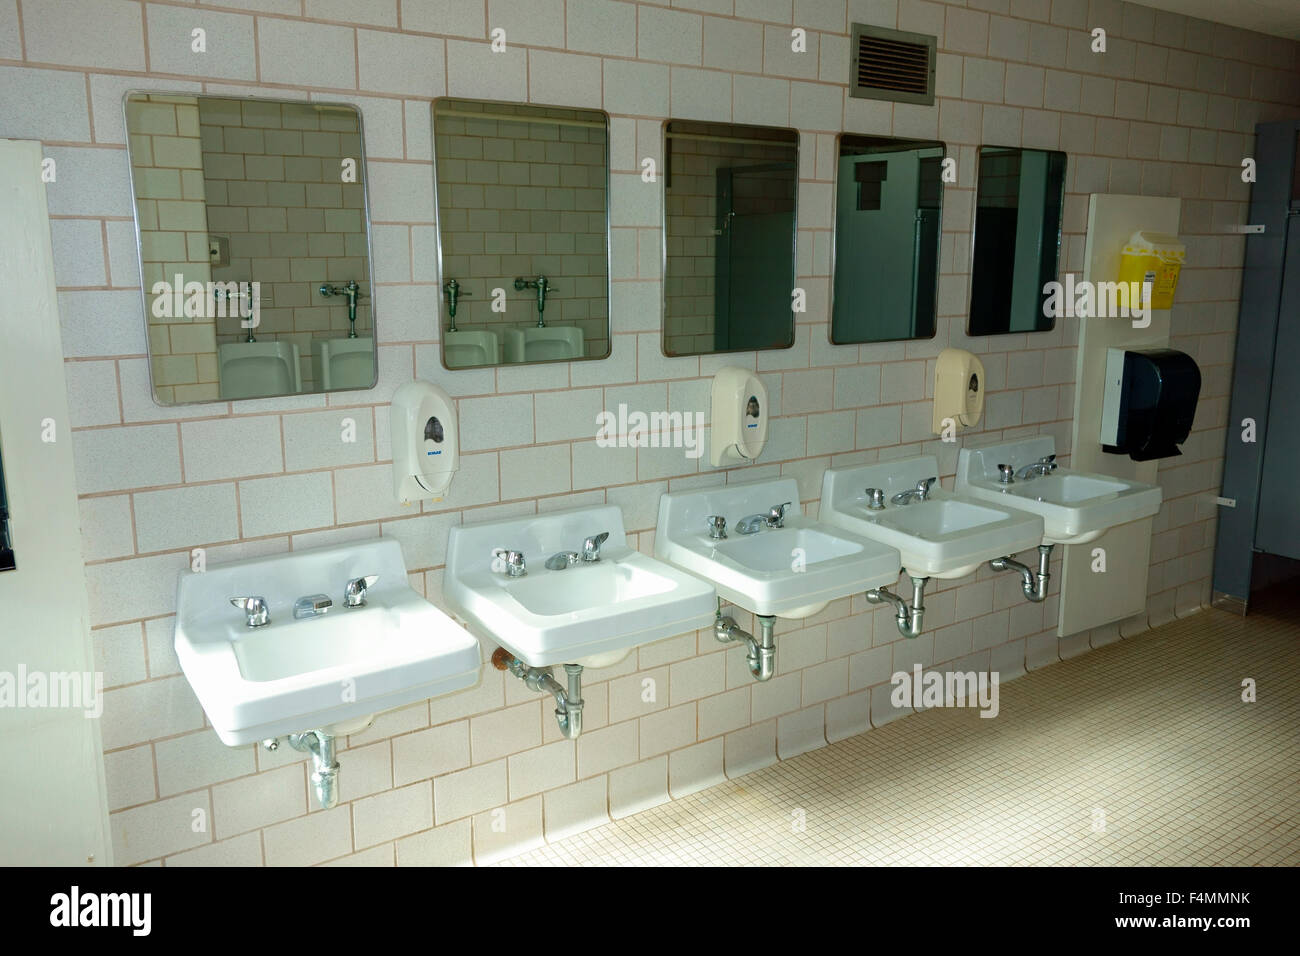 92 Public Toilet Sink Clean Public Bathroom With Off White Tiles Stock Photo Excellent Sink